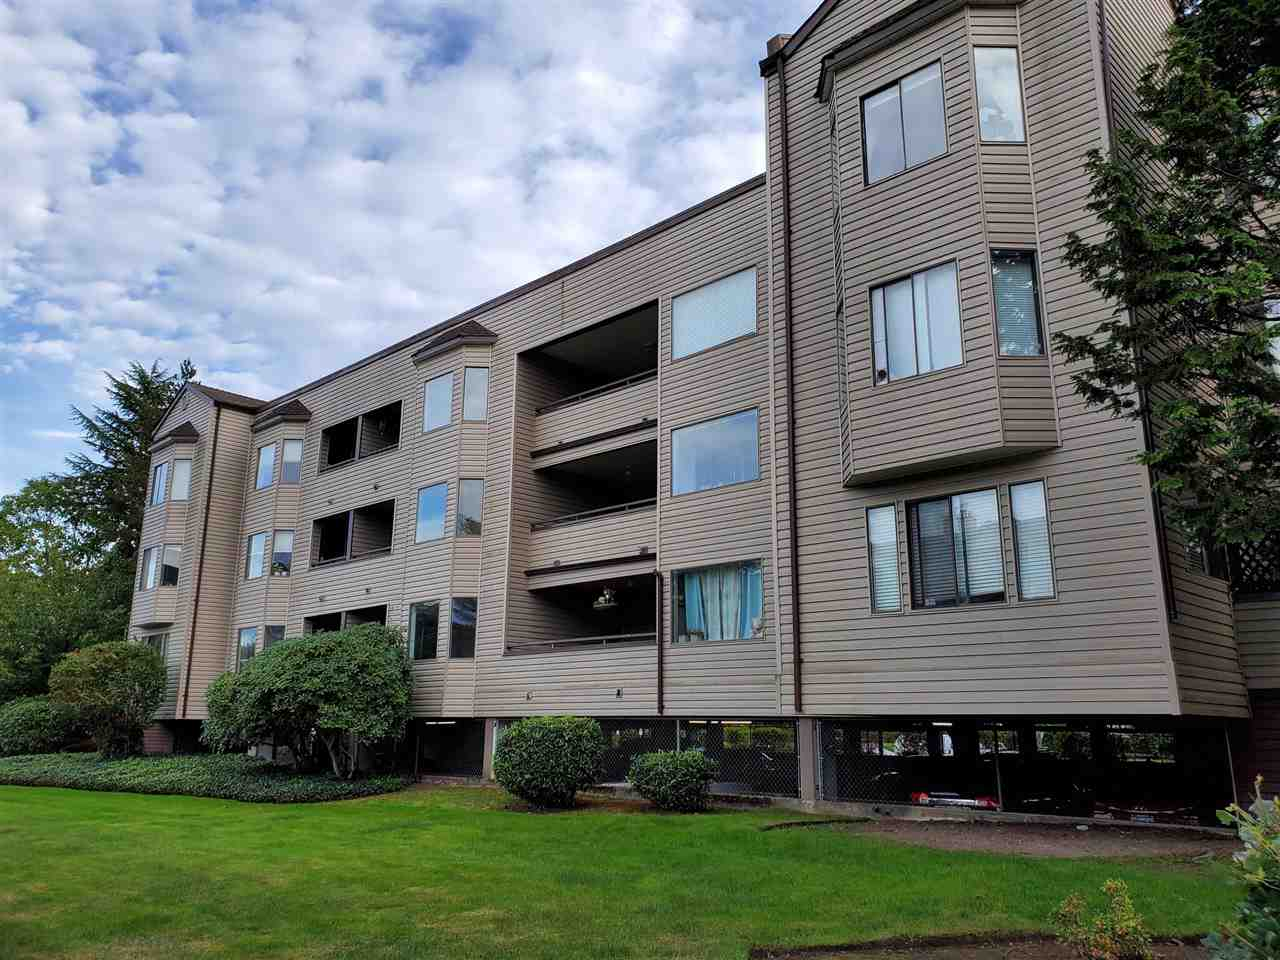 208 5294 204 STREET - Langley City Apartment/Condo for sale, 1 Bedroom (R2502382) - #1